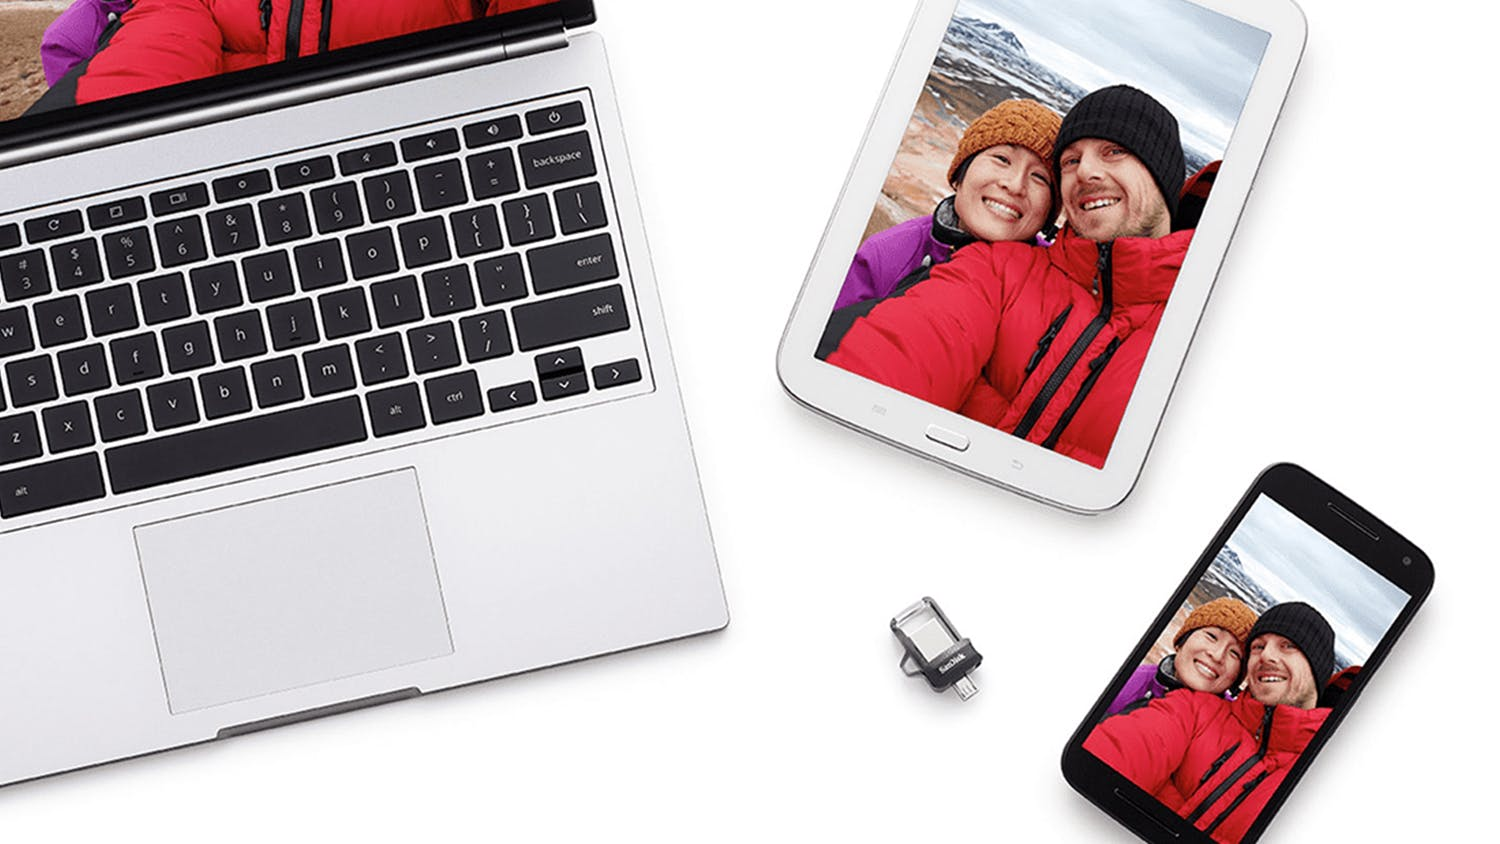 Sandisk Ultra On-The-Go Dual Drive M3.0 - 32GB